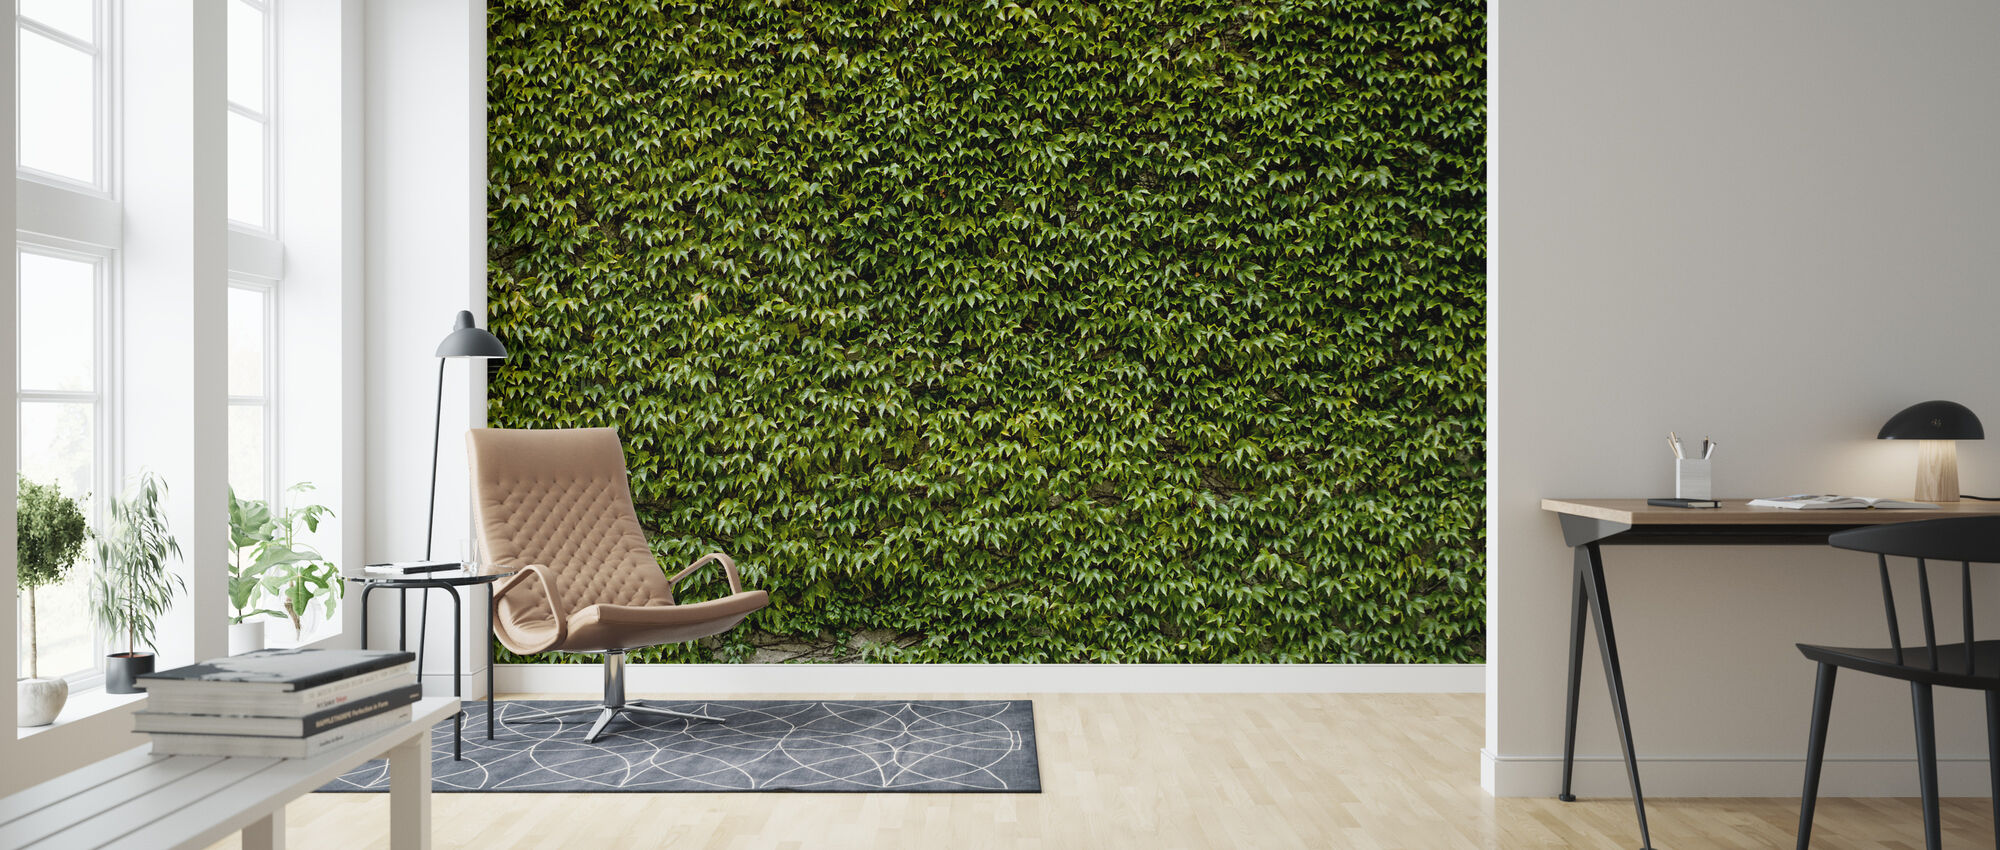 Wild Ivy Wall - Wallpaper - Living Room